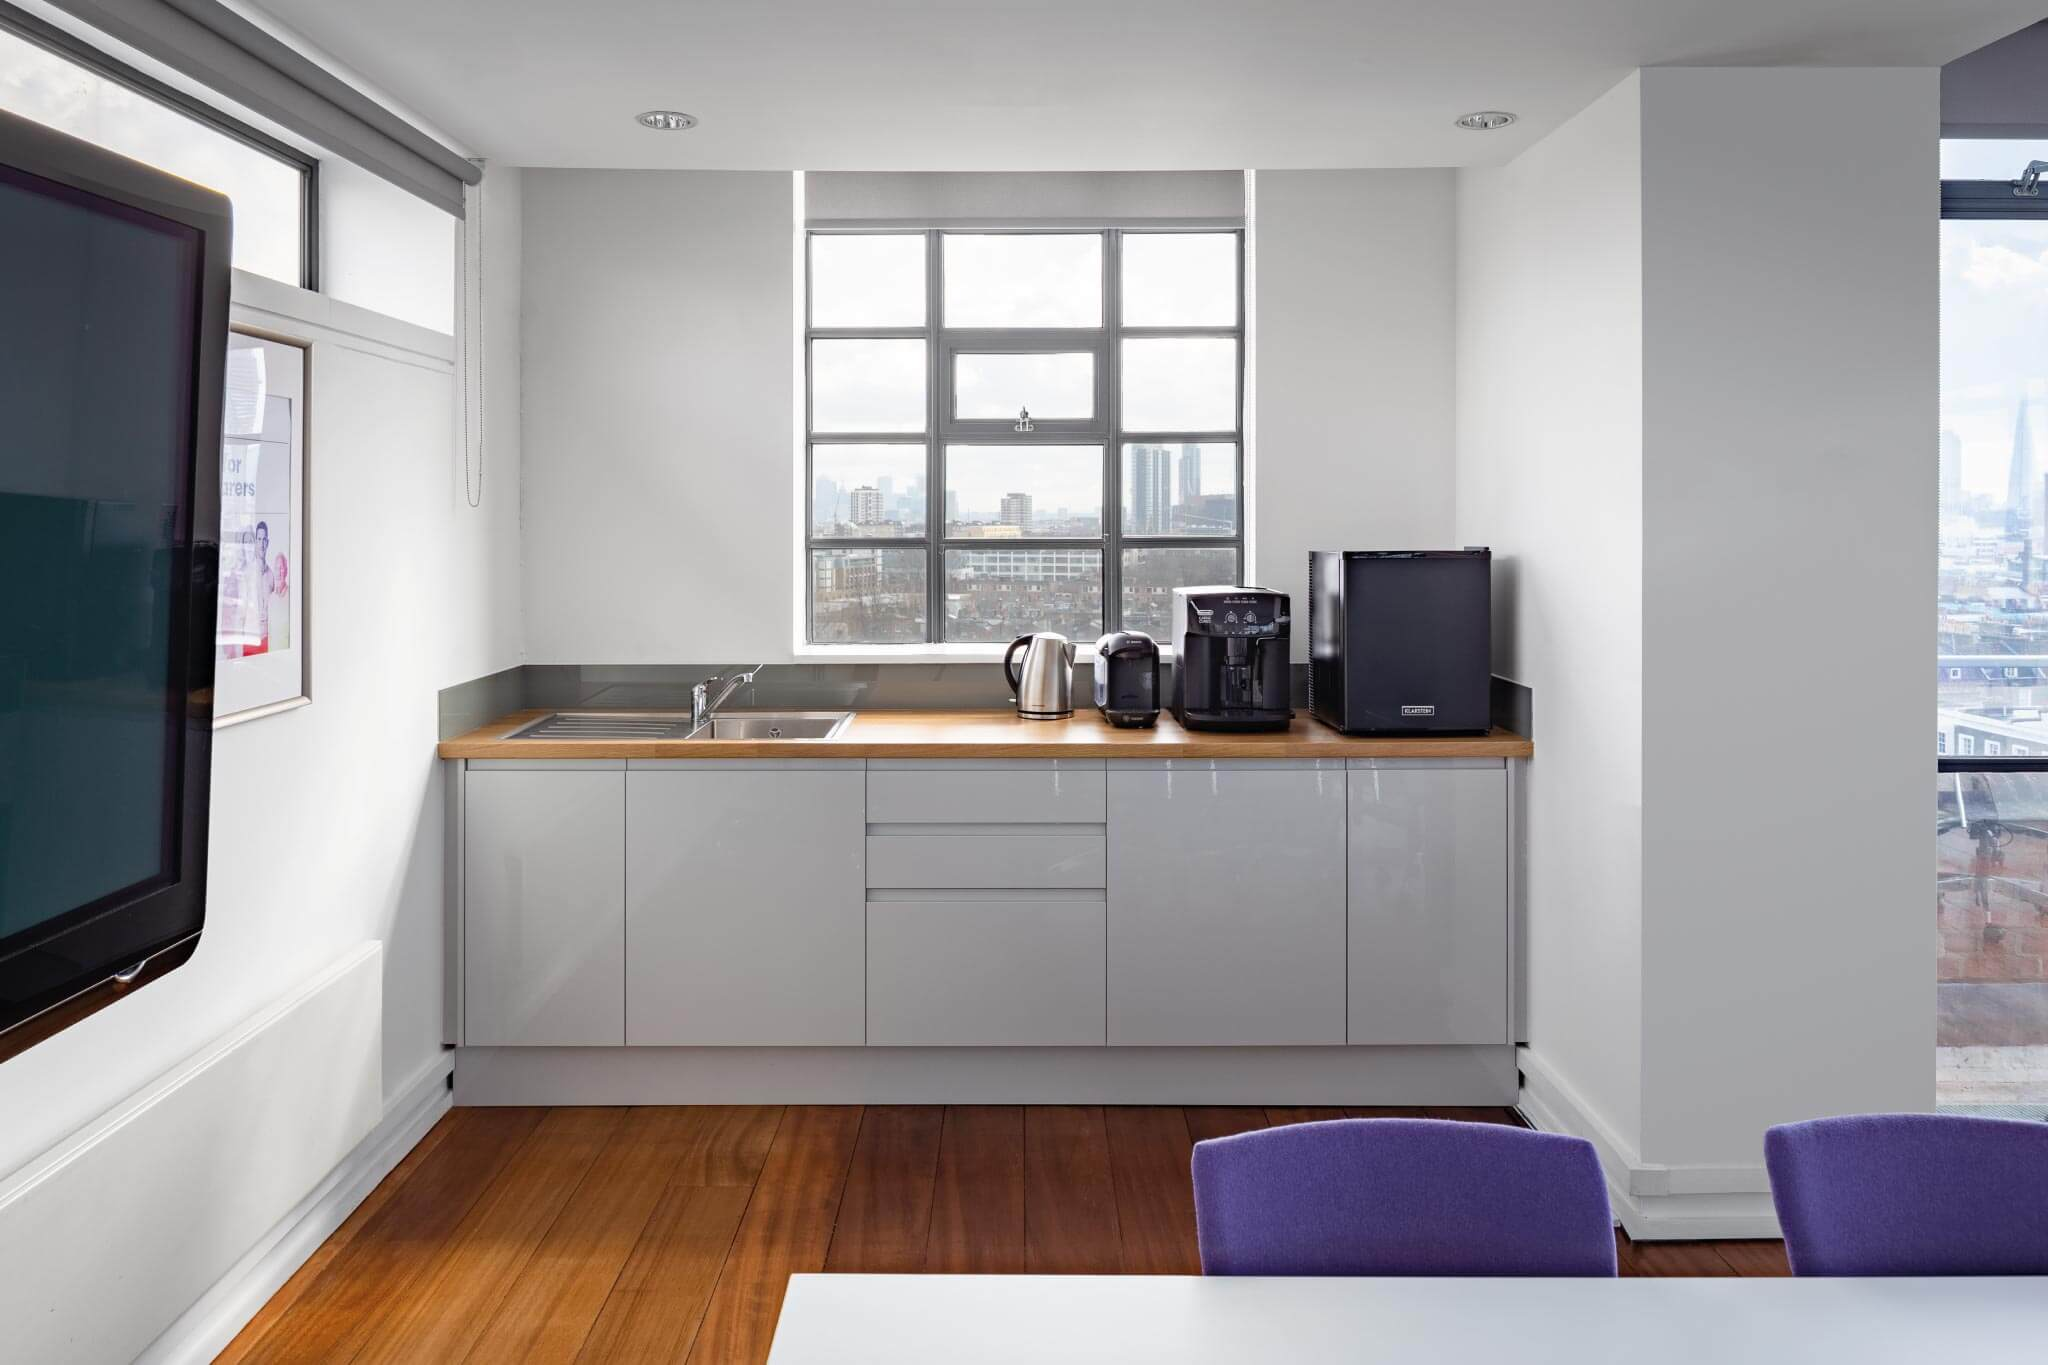 Servelec---London---Dale-Office-Interiors---Office-kitchen---2019